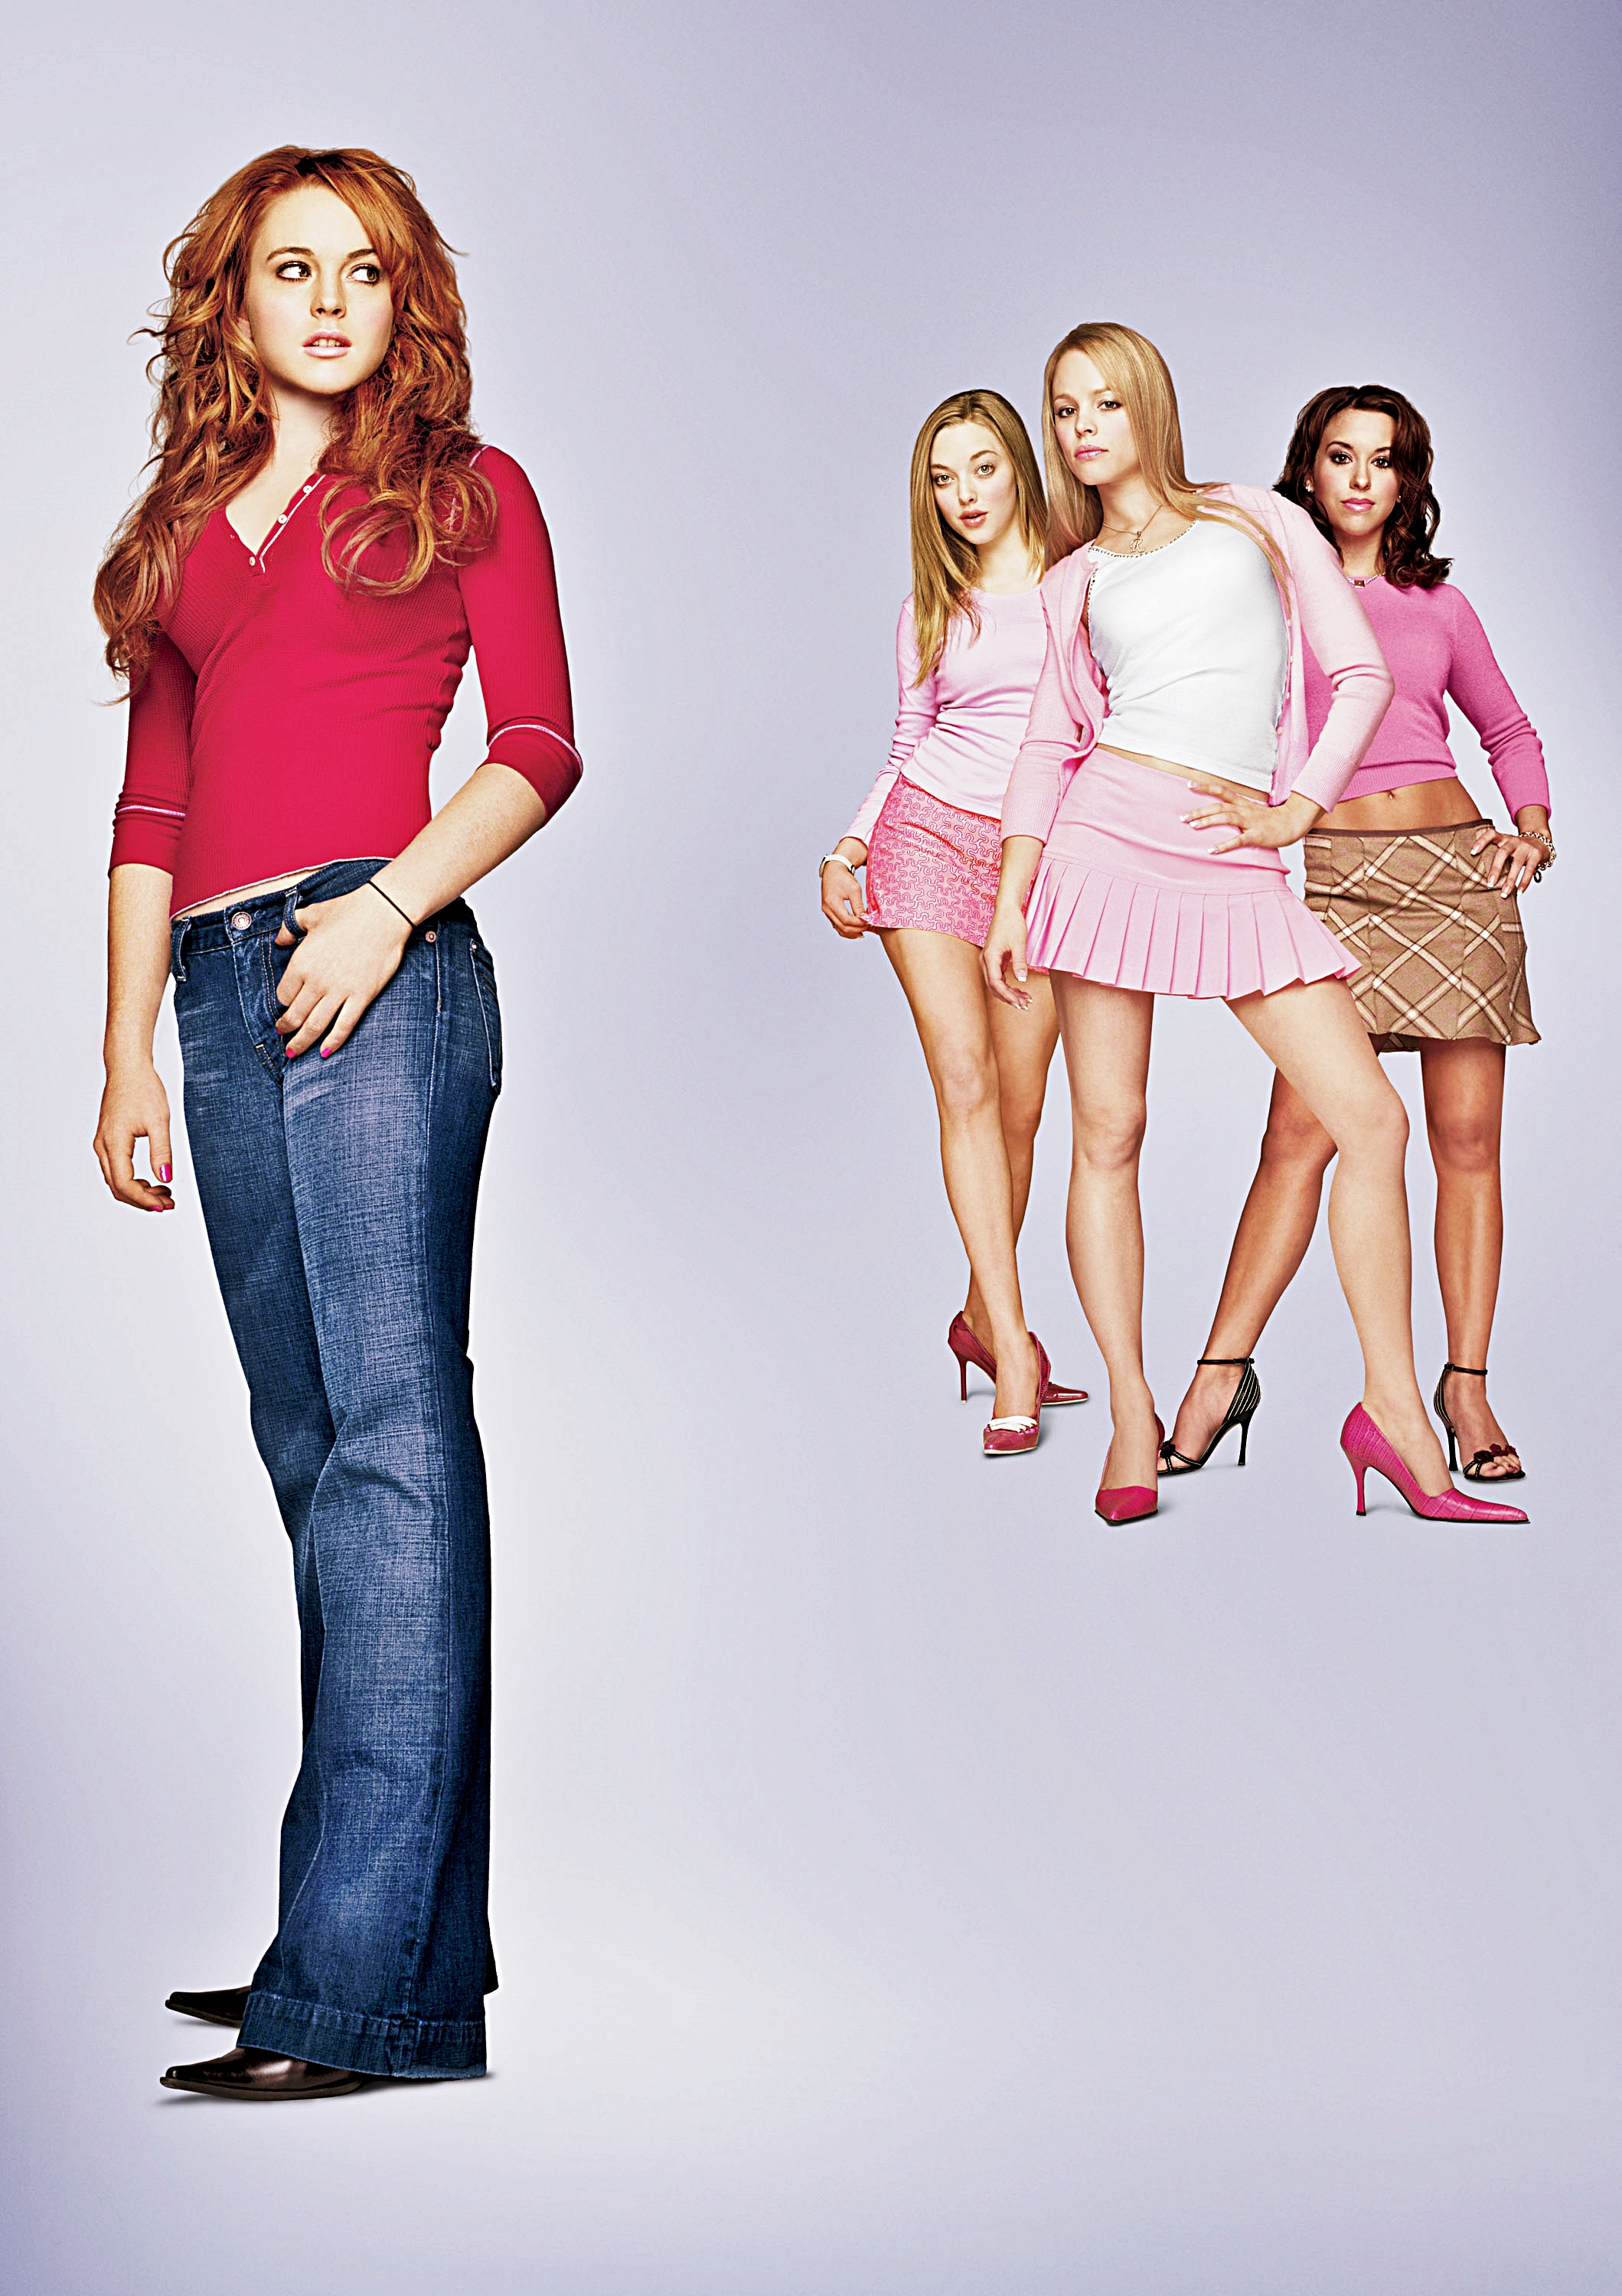 Mean girls images movie posters mean girls hd wallpaper and background phot - Comment les cambrioleurs reperent ...